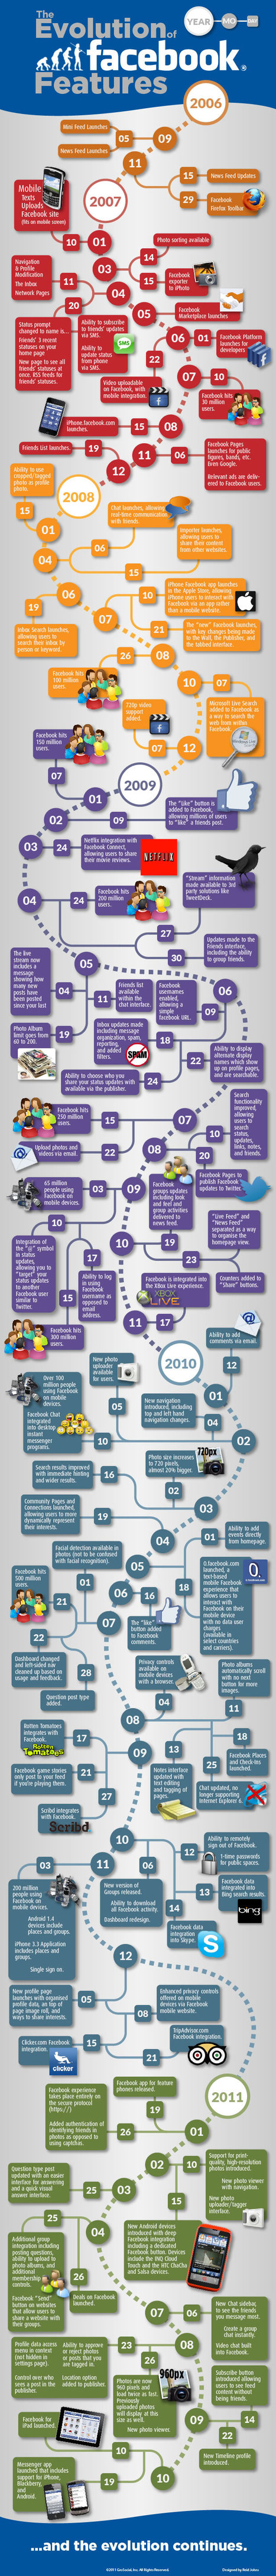 The Evolution of Facebook Features[INFOGRAPHIC] - Search Engine Journal | Social Media (network, technology, blog, community, virtual reality, etc...) | Scoop.it